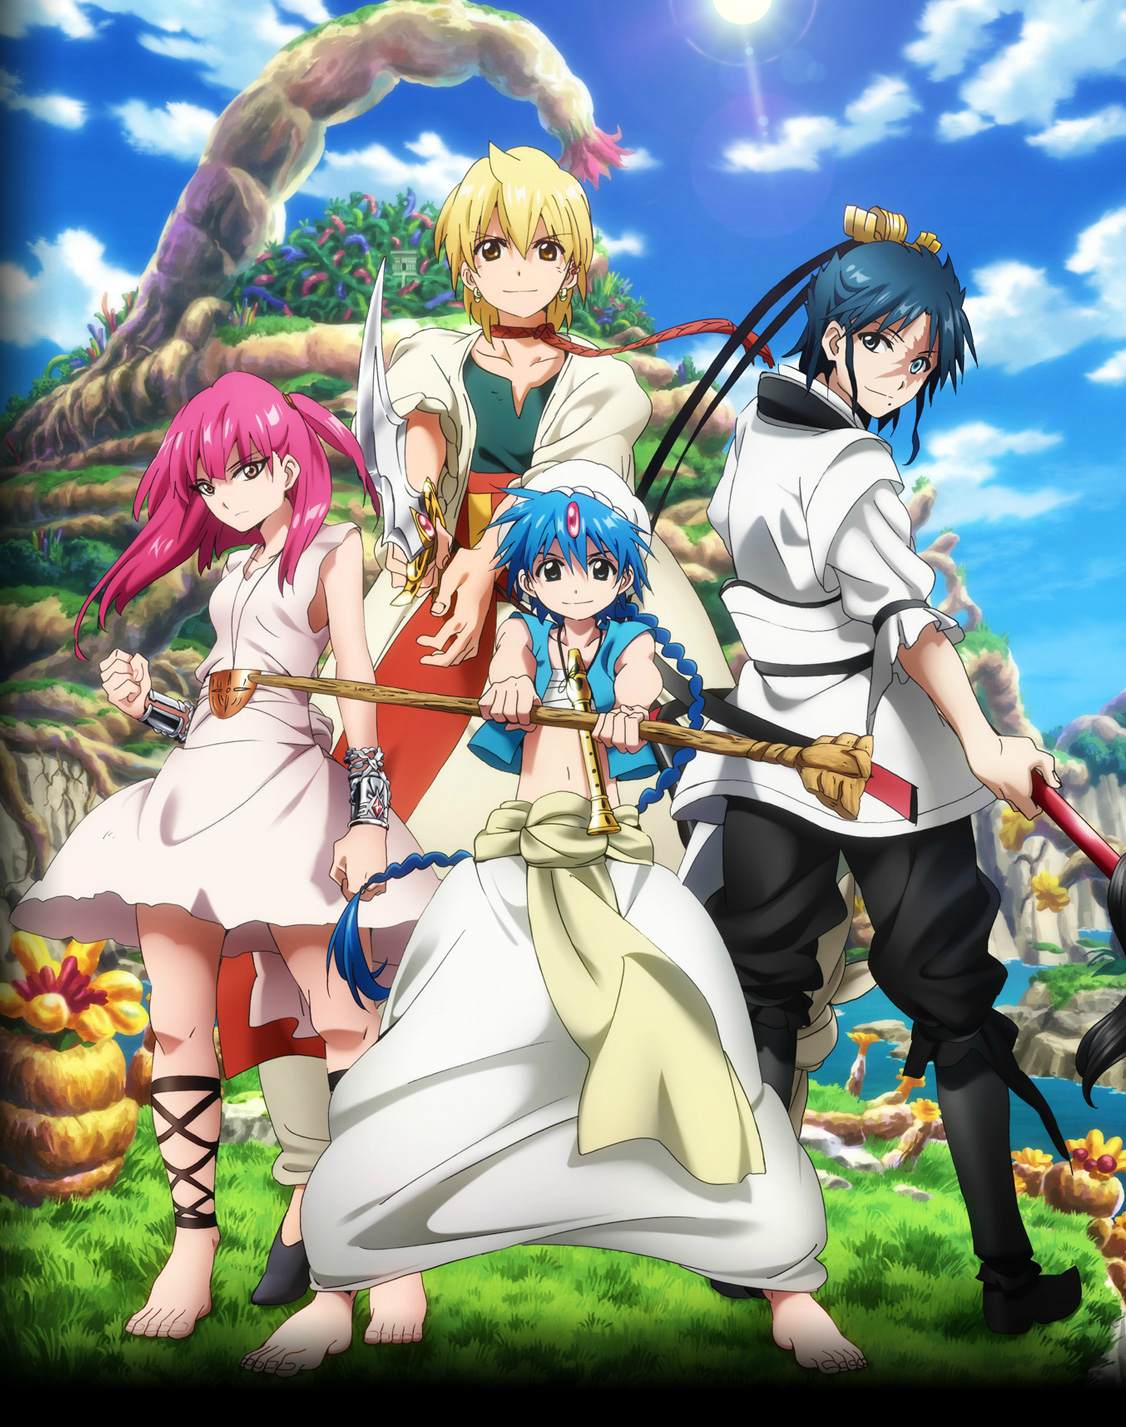 Magi Wallpapers Movie Hq Magi Pictures 4k Wallpapers 2019